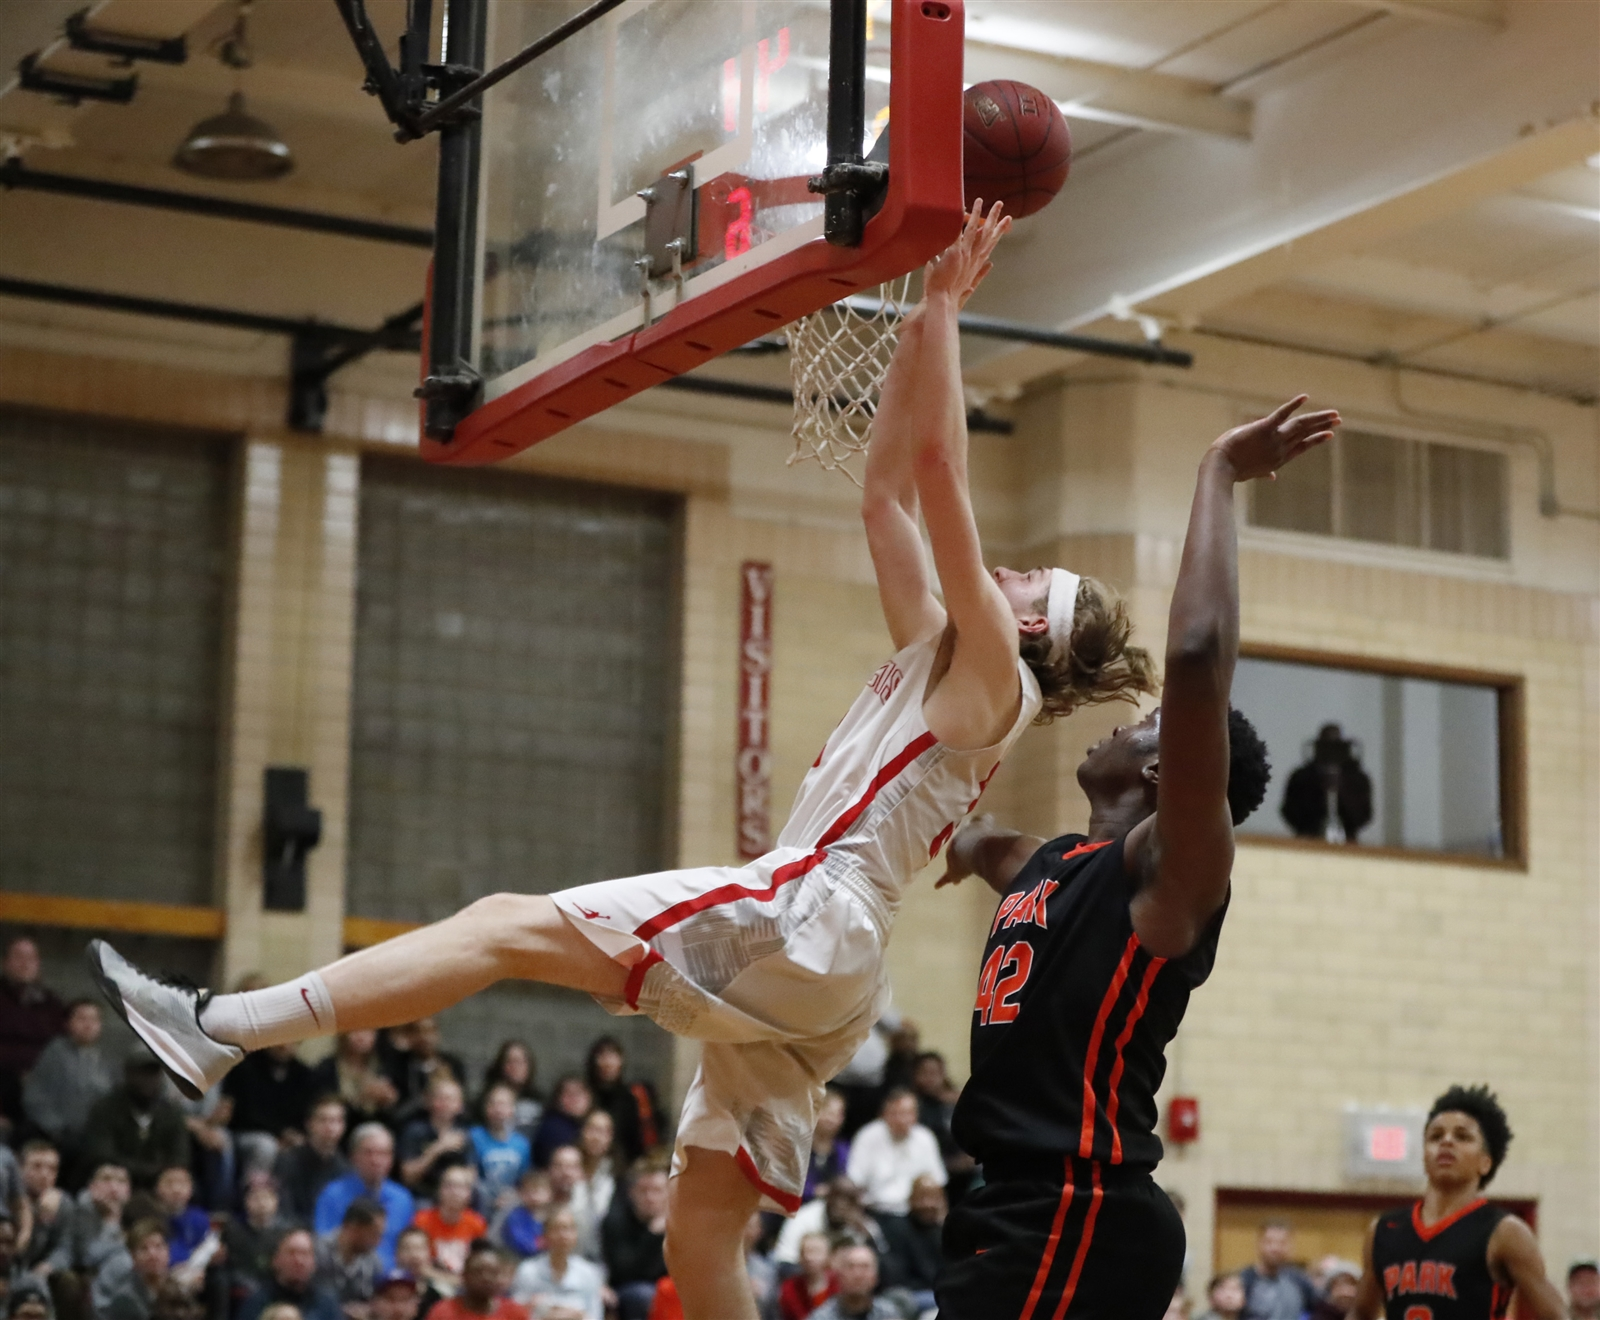 Bo Sireika scored a game-high 20 points to lead St. Francis to the overtime victory over Park on Friday night. (Harry Scull Jr./Buffalo News)